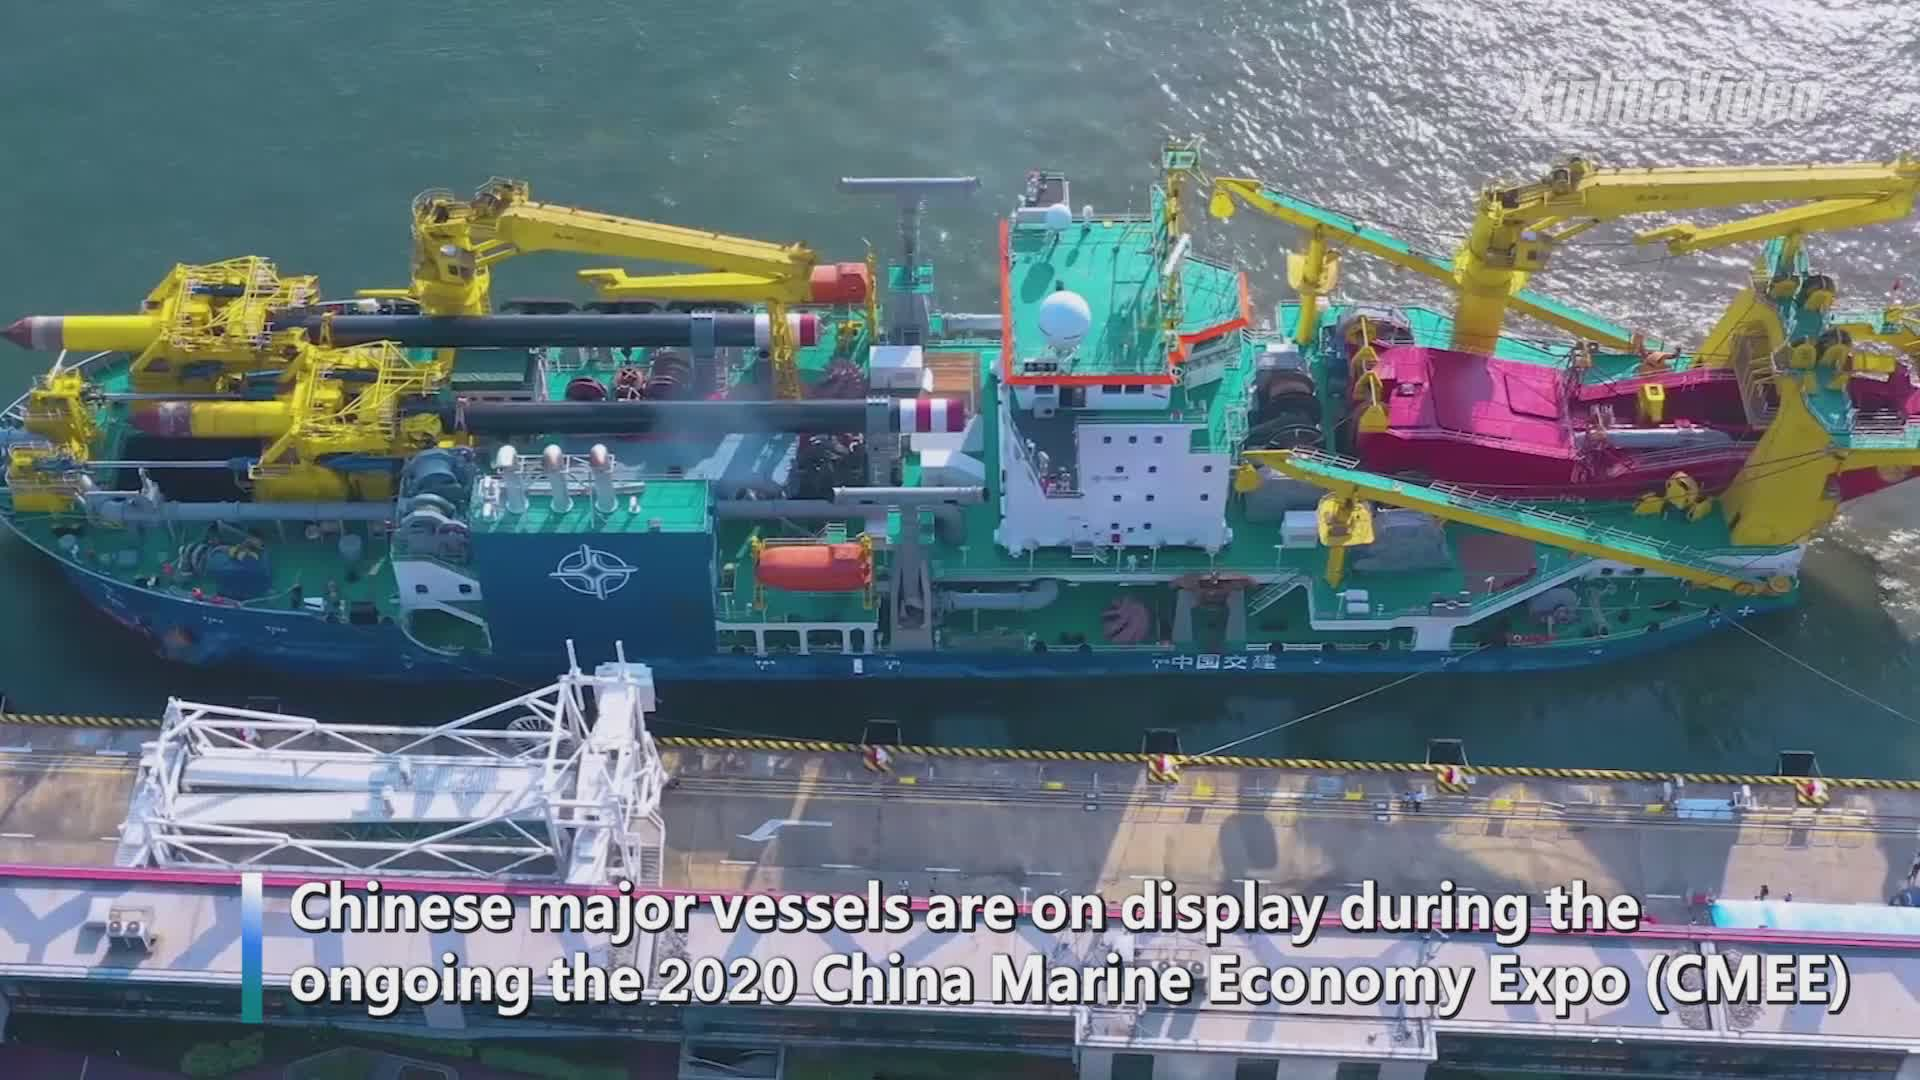 High-tech Chinese vessels on display at marine economy expo